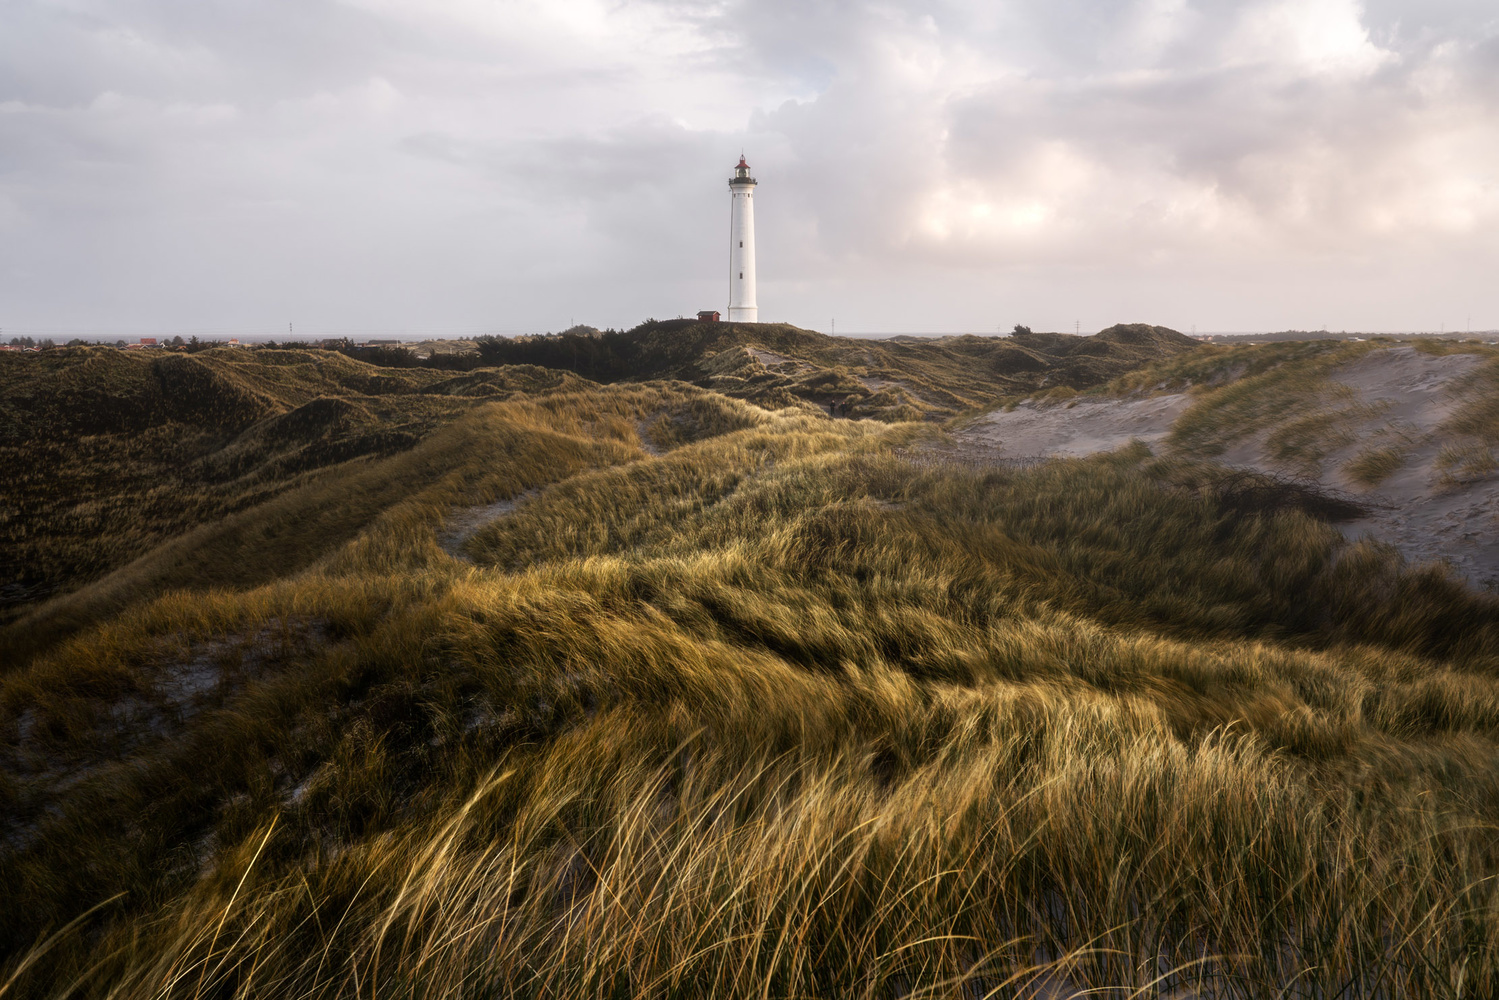 No, a Wide Angle Lens Is Not the Best for Landscape Photography